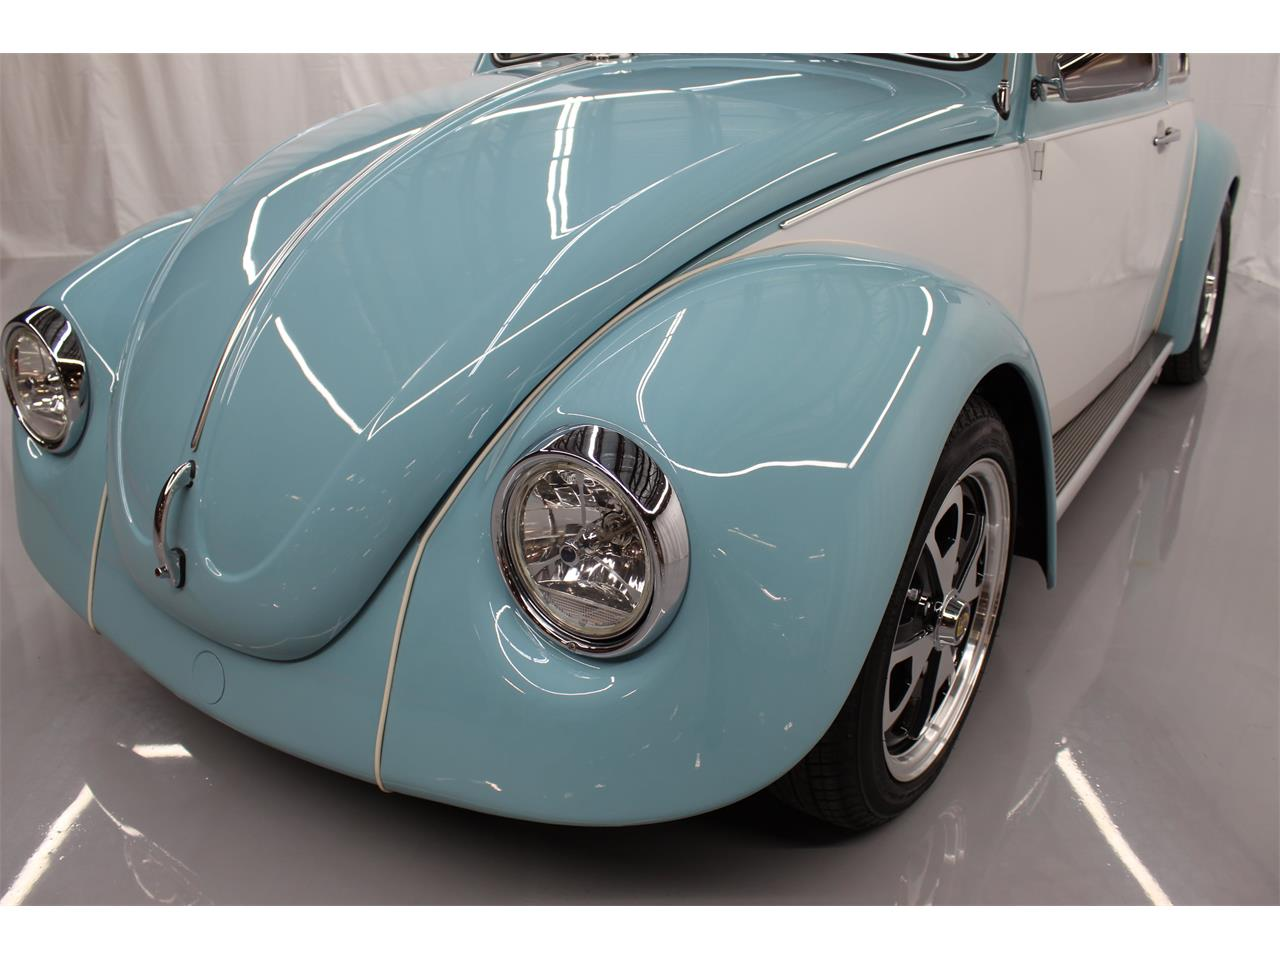 1974 Volkswagen Beetle for sale in Christiansburg, VA – photo 11